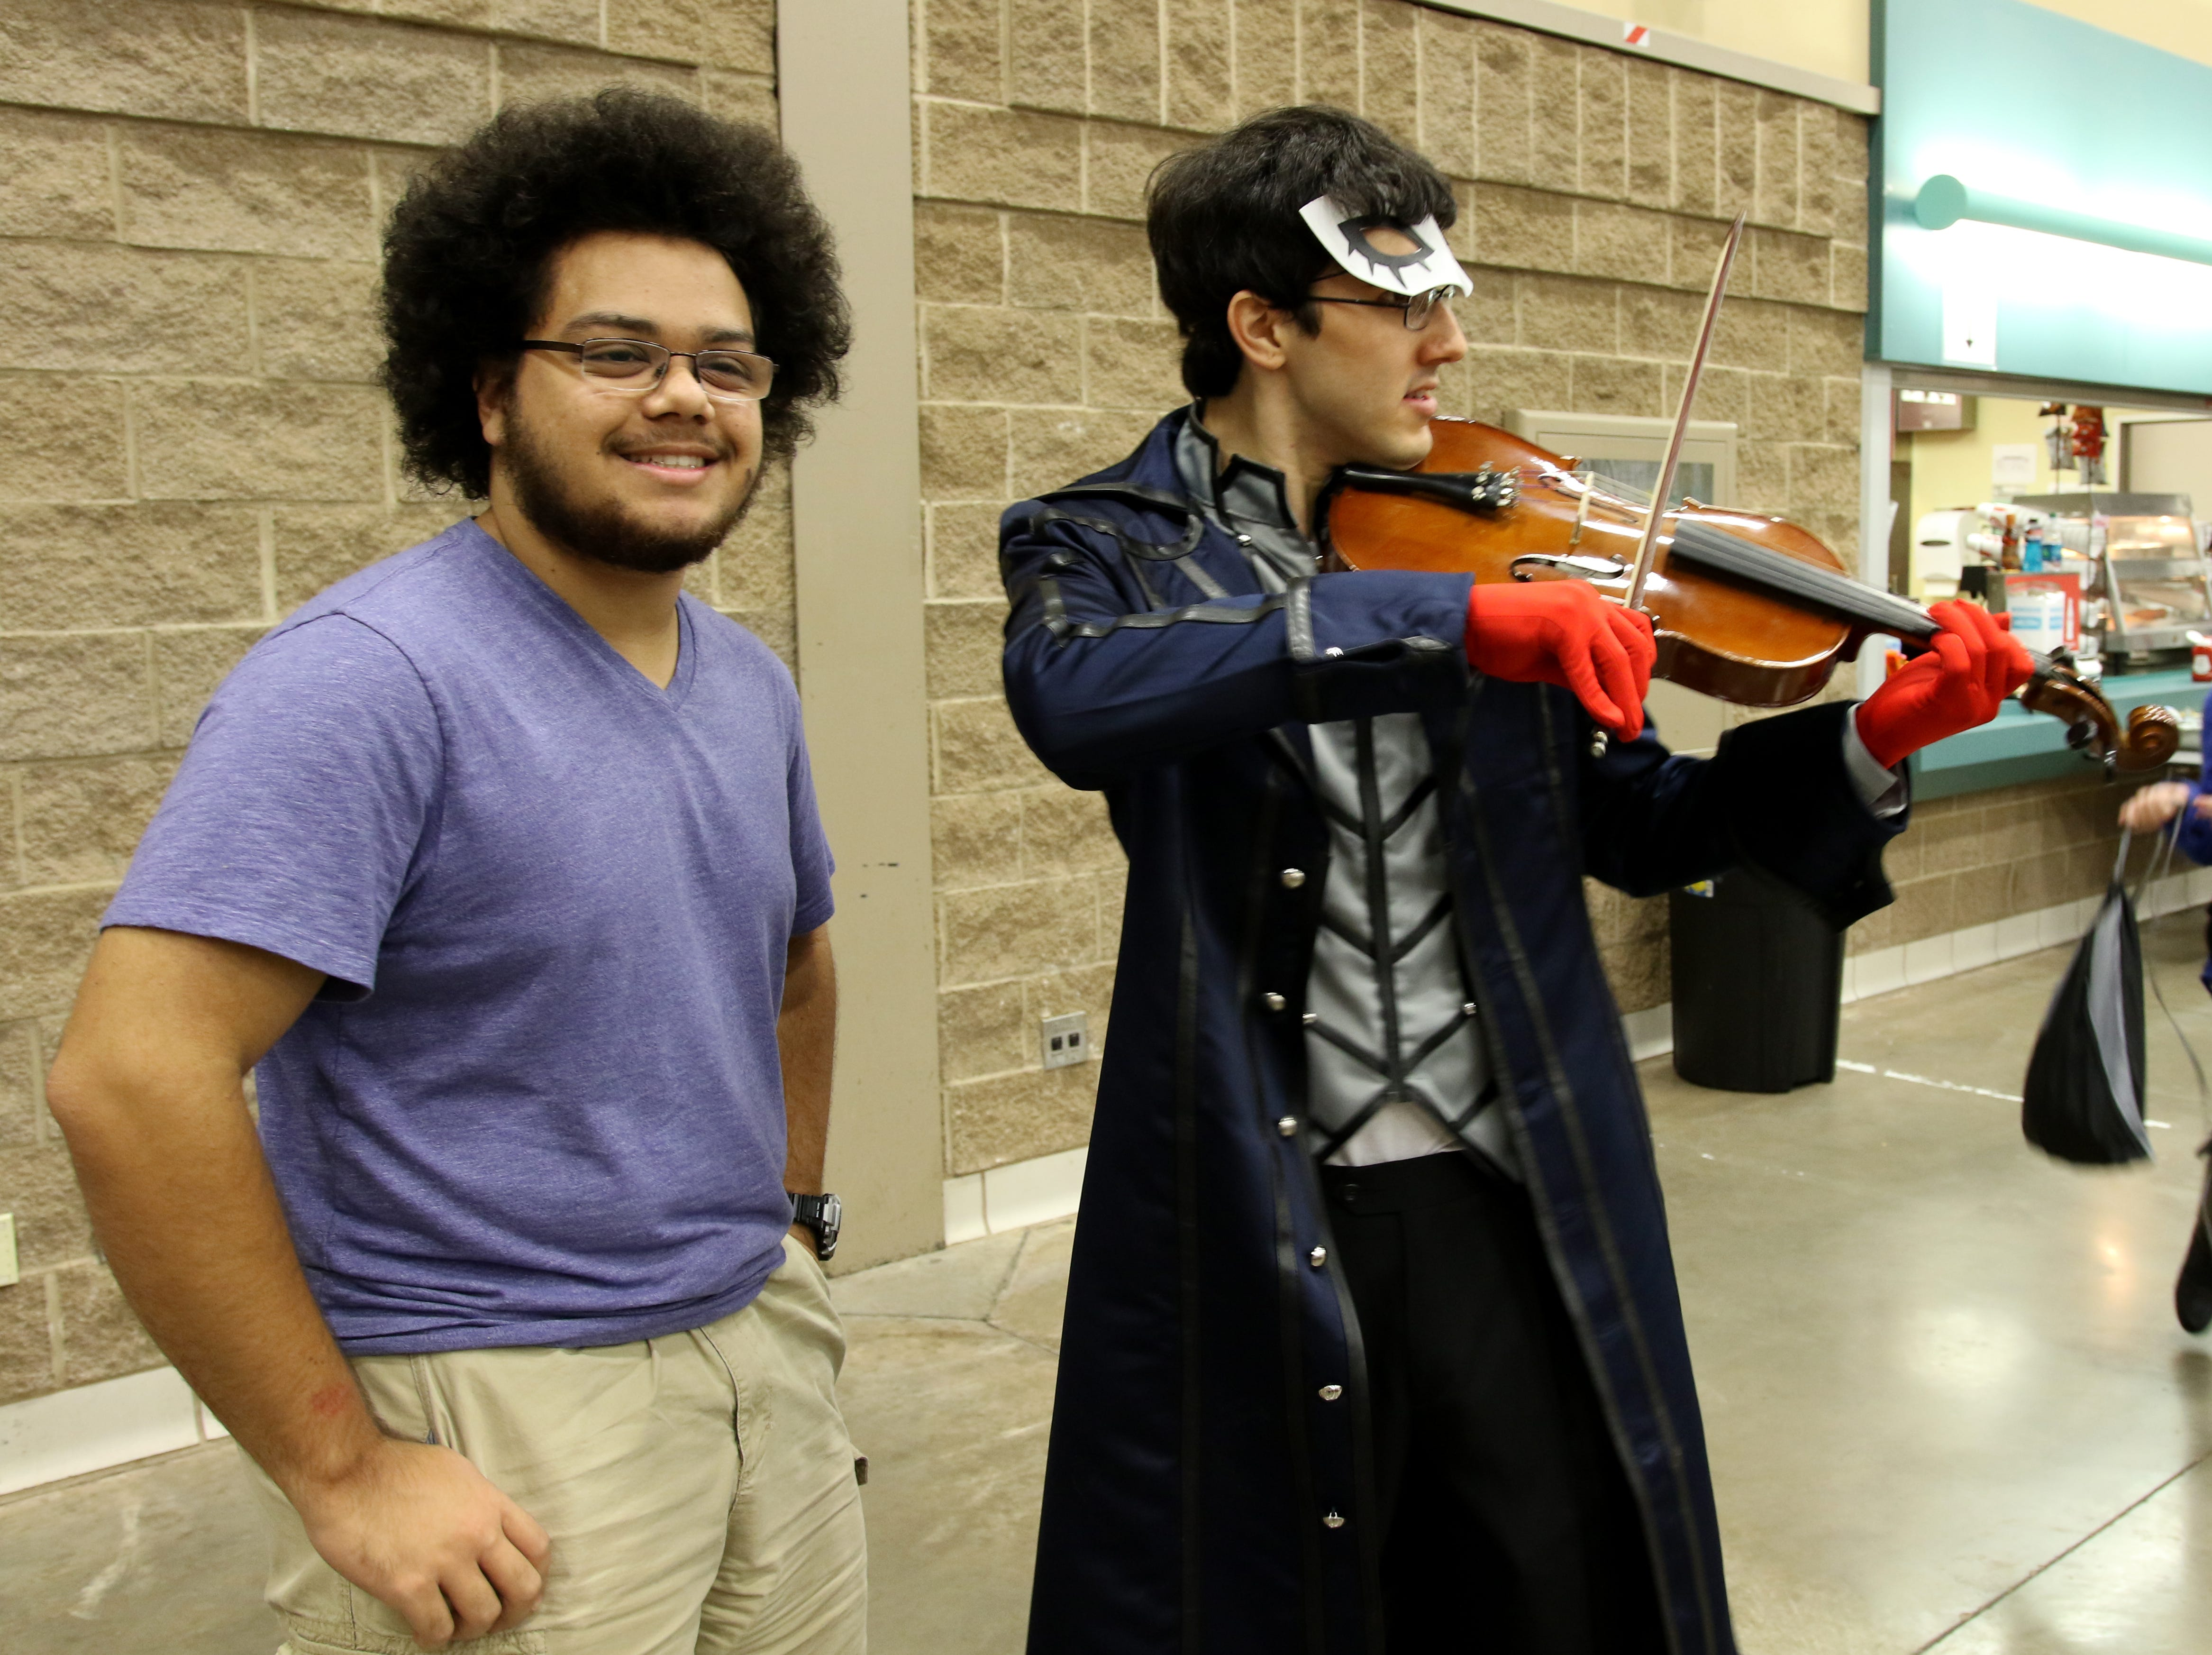 Aaron Hendri has his photo taken with Julian Mendoza, cosplaying as Joker from Persona 5, at Animania Saturday, July 28, 2018, in the MPEC Ray Clymer Exhibit Hall.